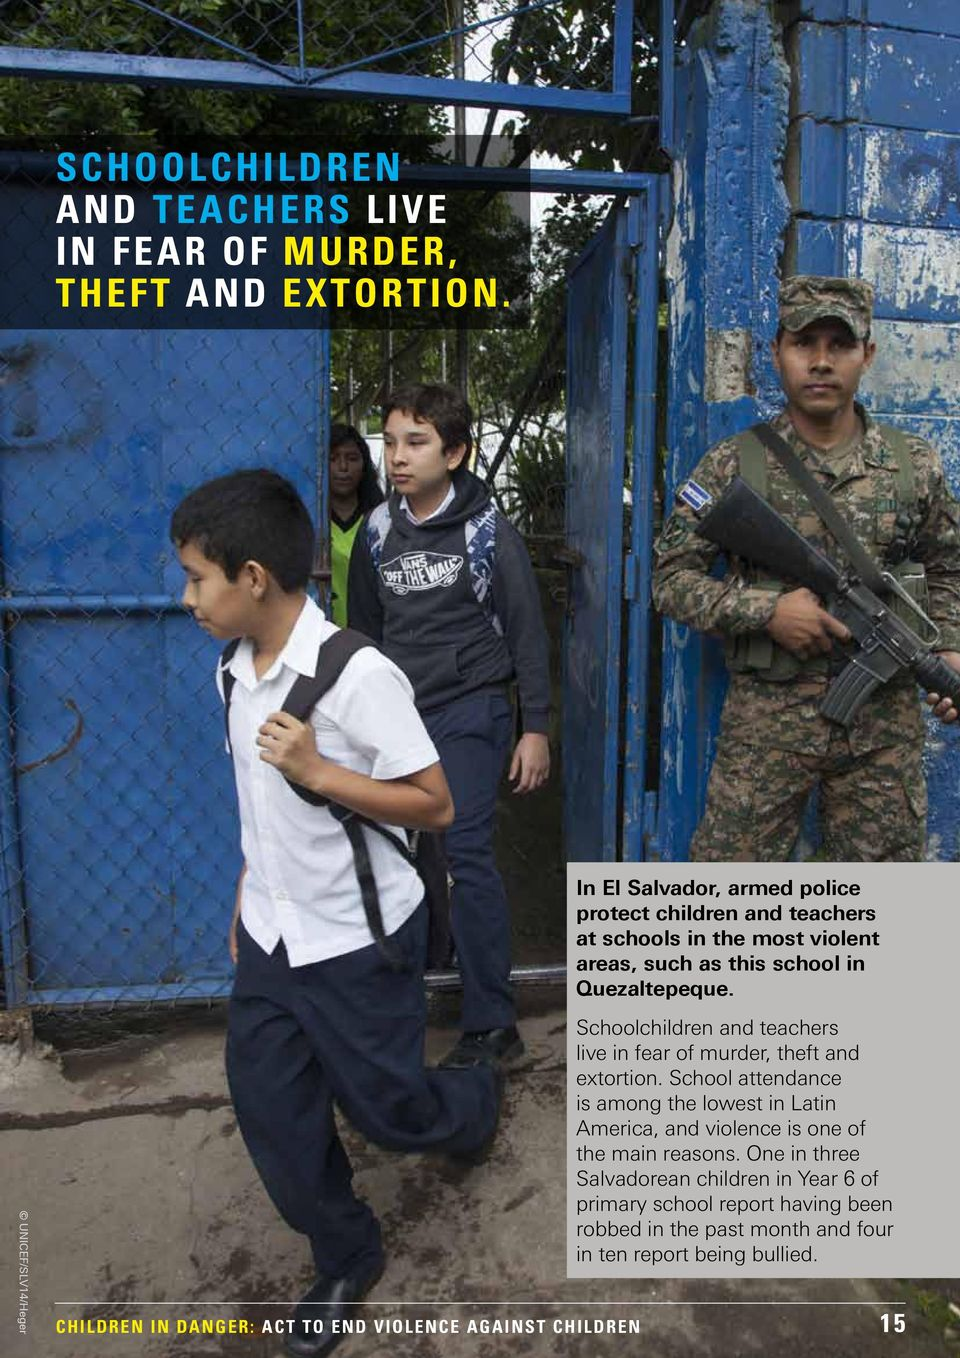 26 In Latin America and the Caribbean, where adolescents face the heaviest burden from violence, nearly a third of all murders are estimated to be gang- or crime-related.